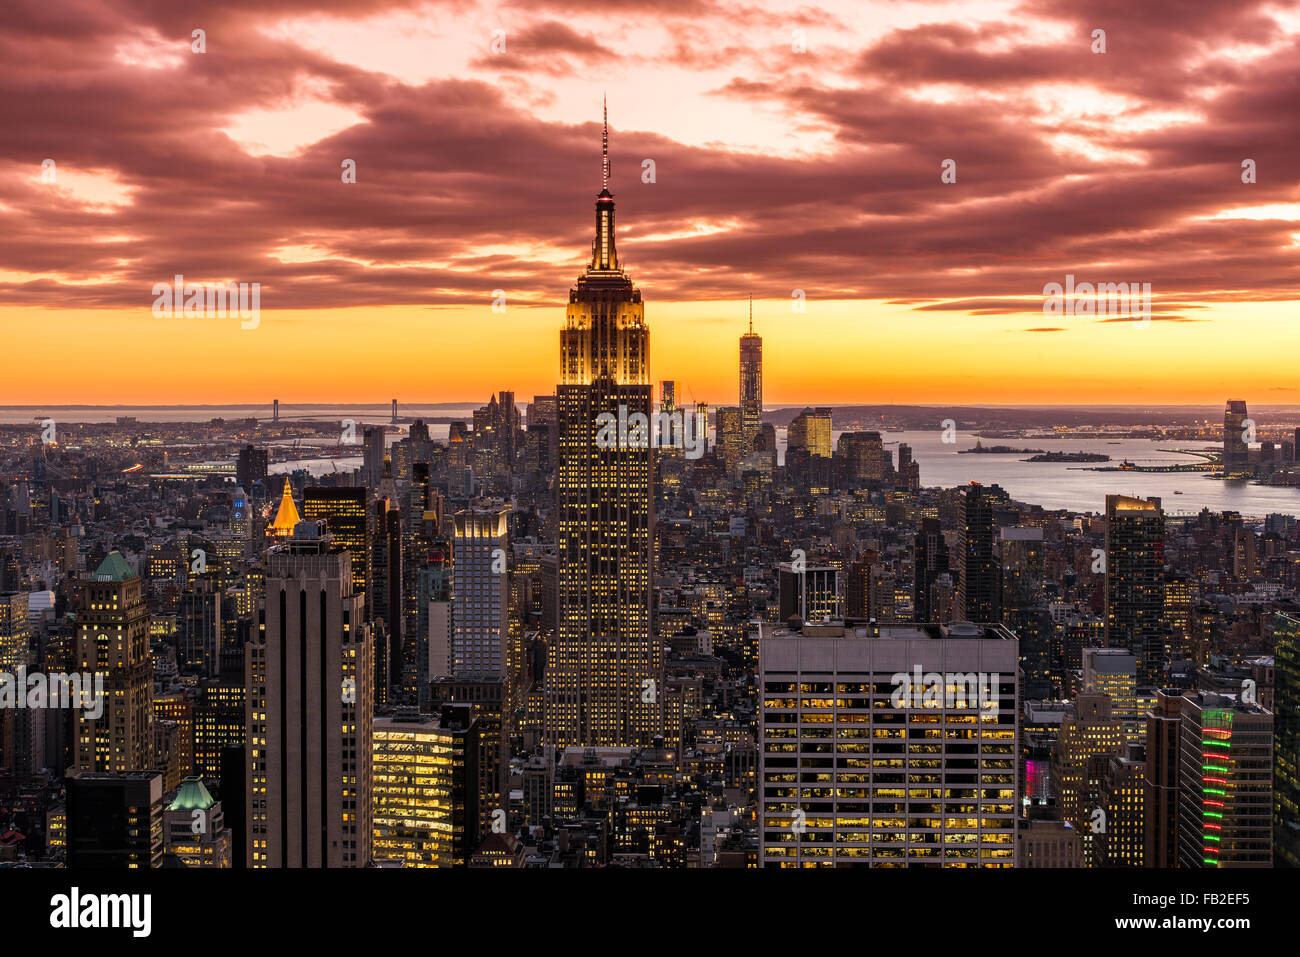 View over Midtown Manhattan skyline at sunset from the Top of the Rock, New York, USA - Stock Image